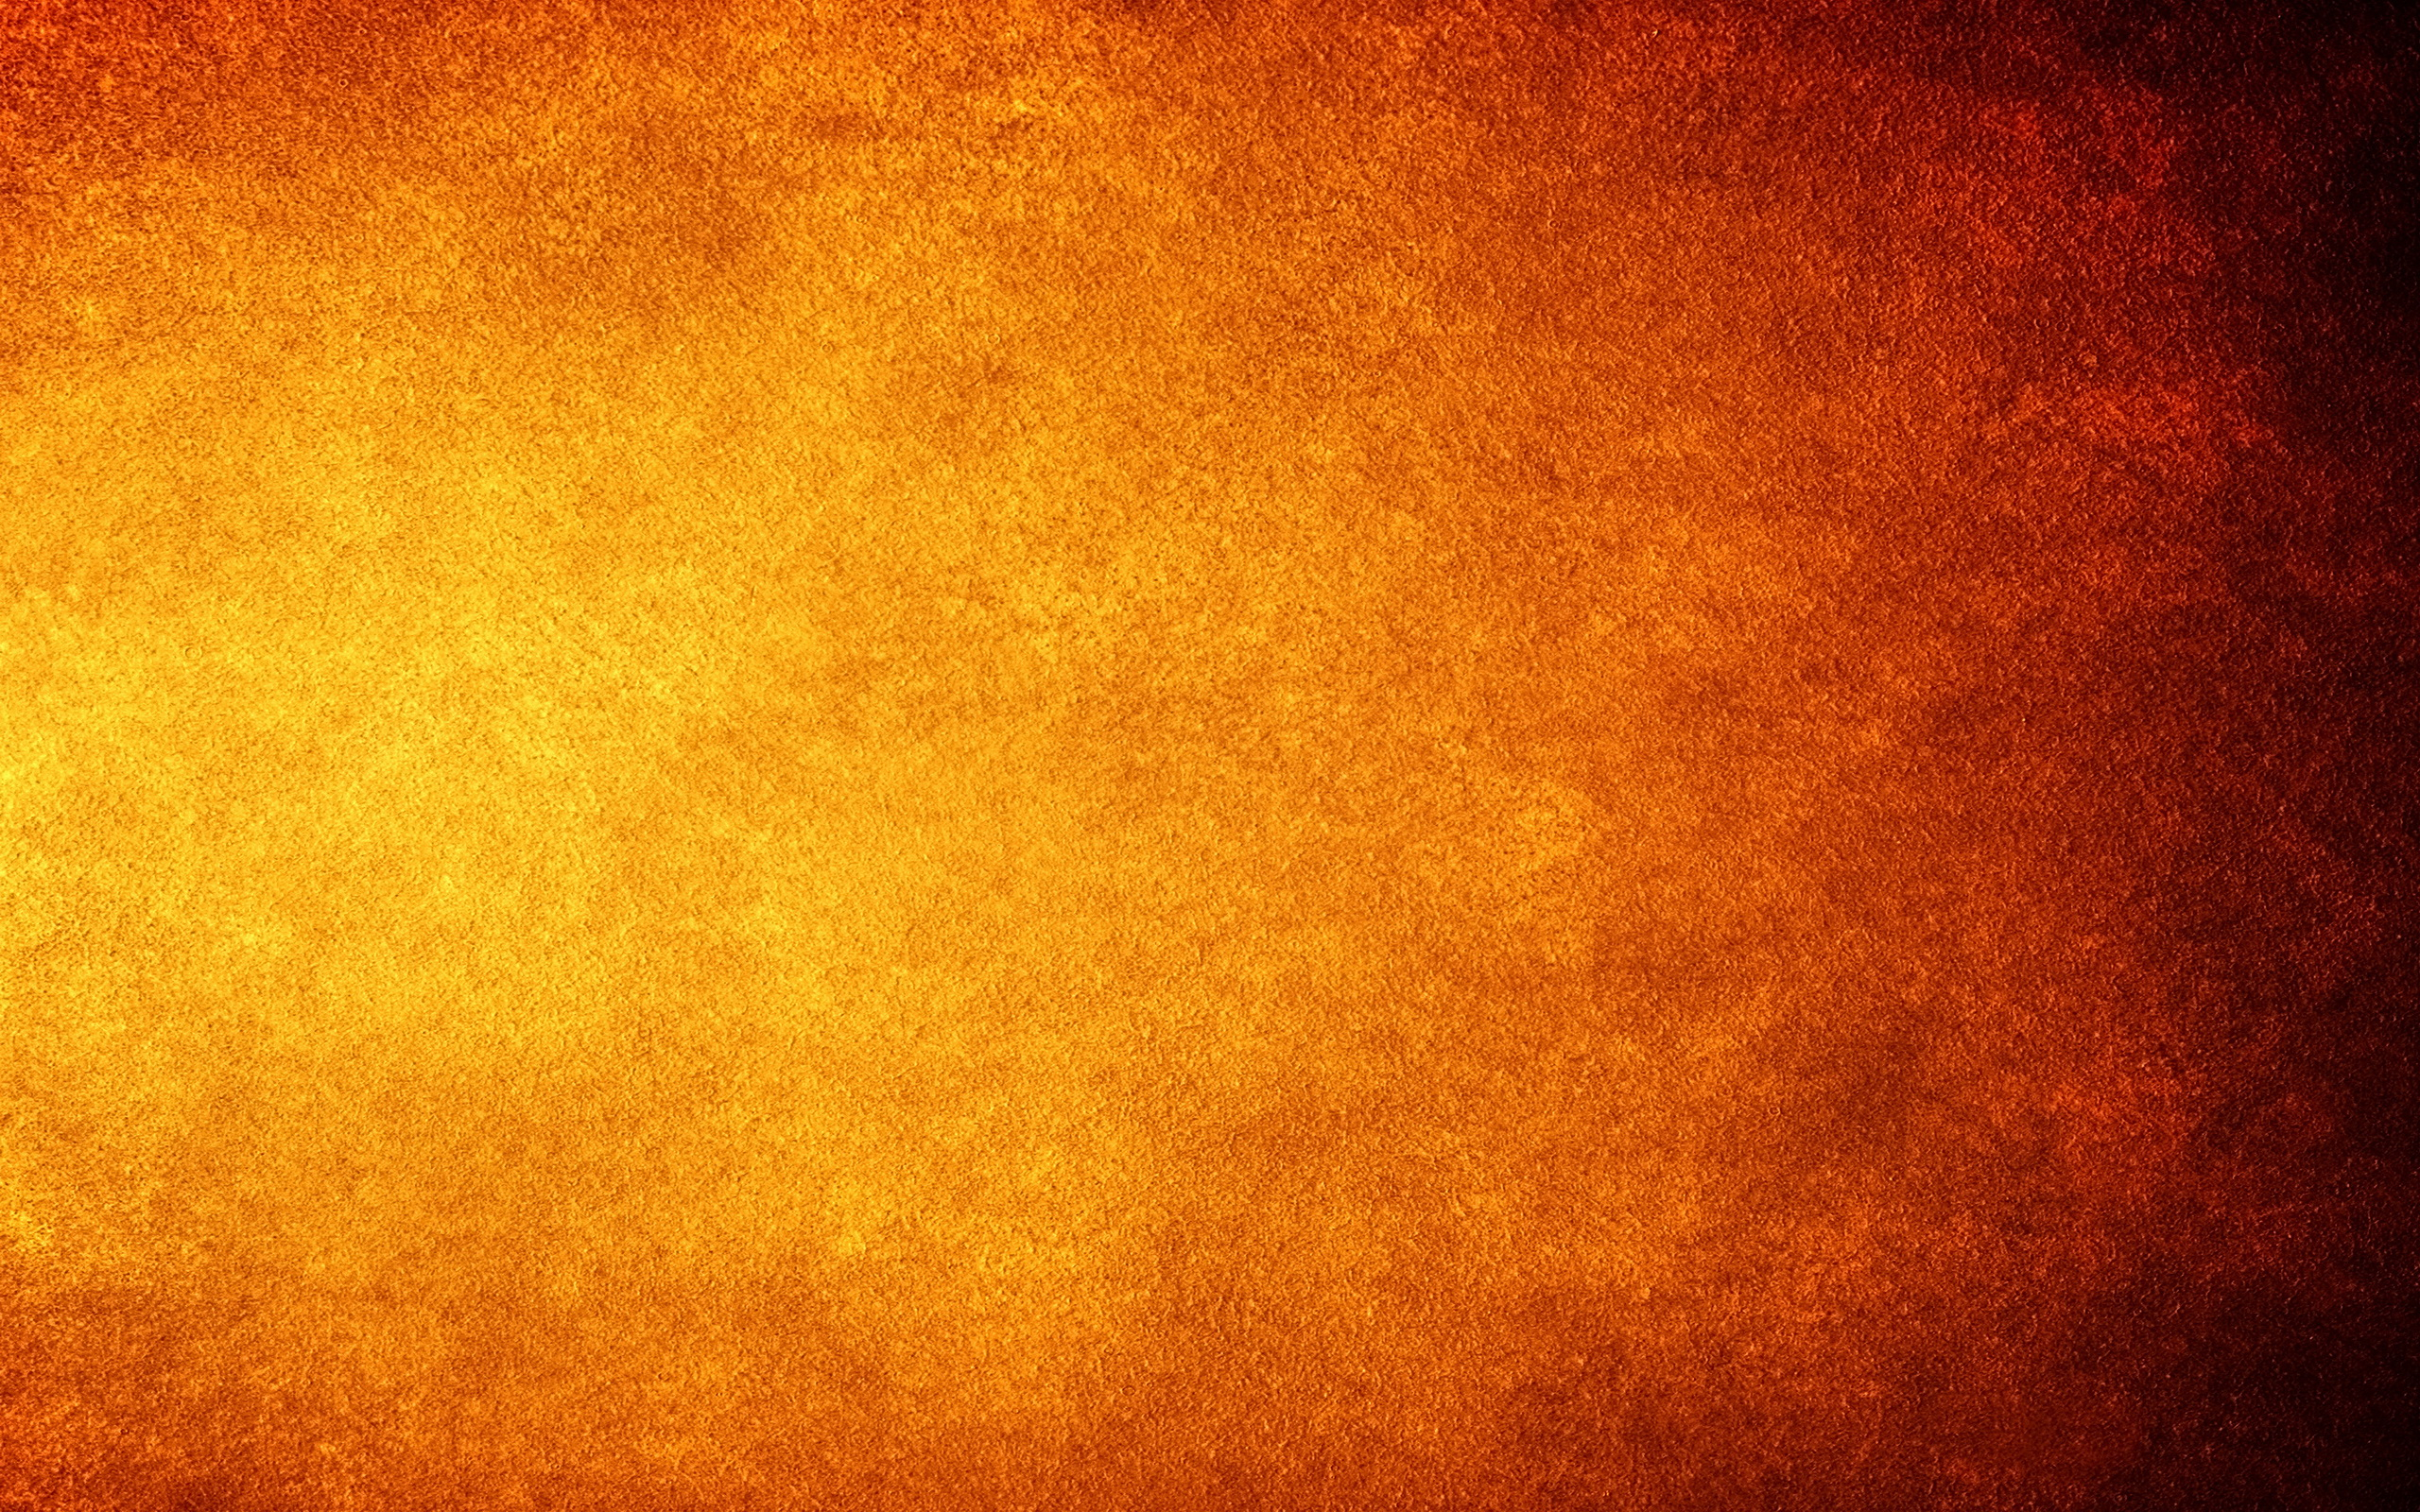 Orange wallpaper 2560x1600 45333